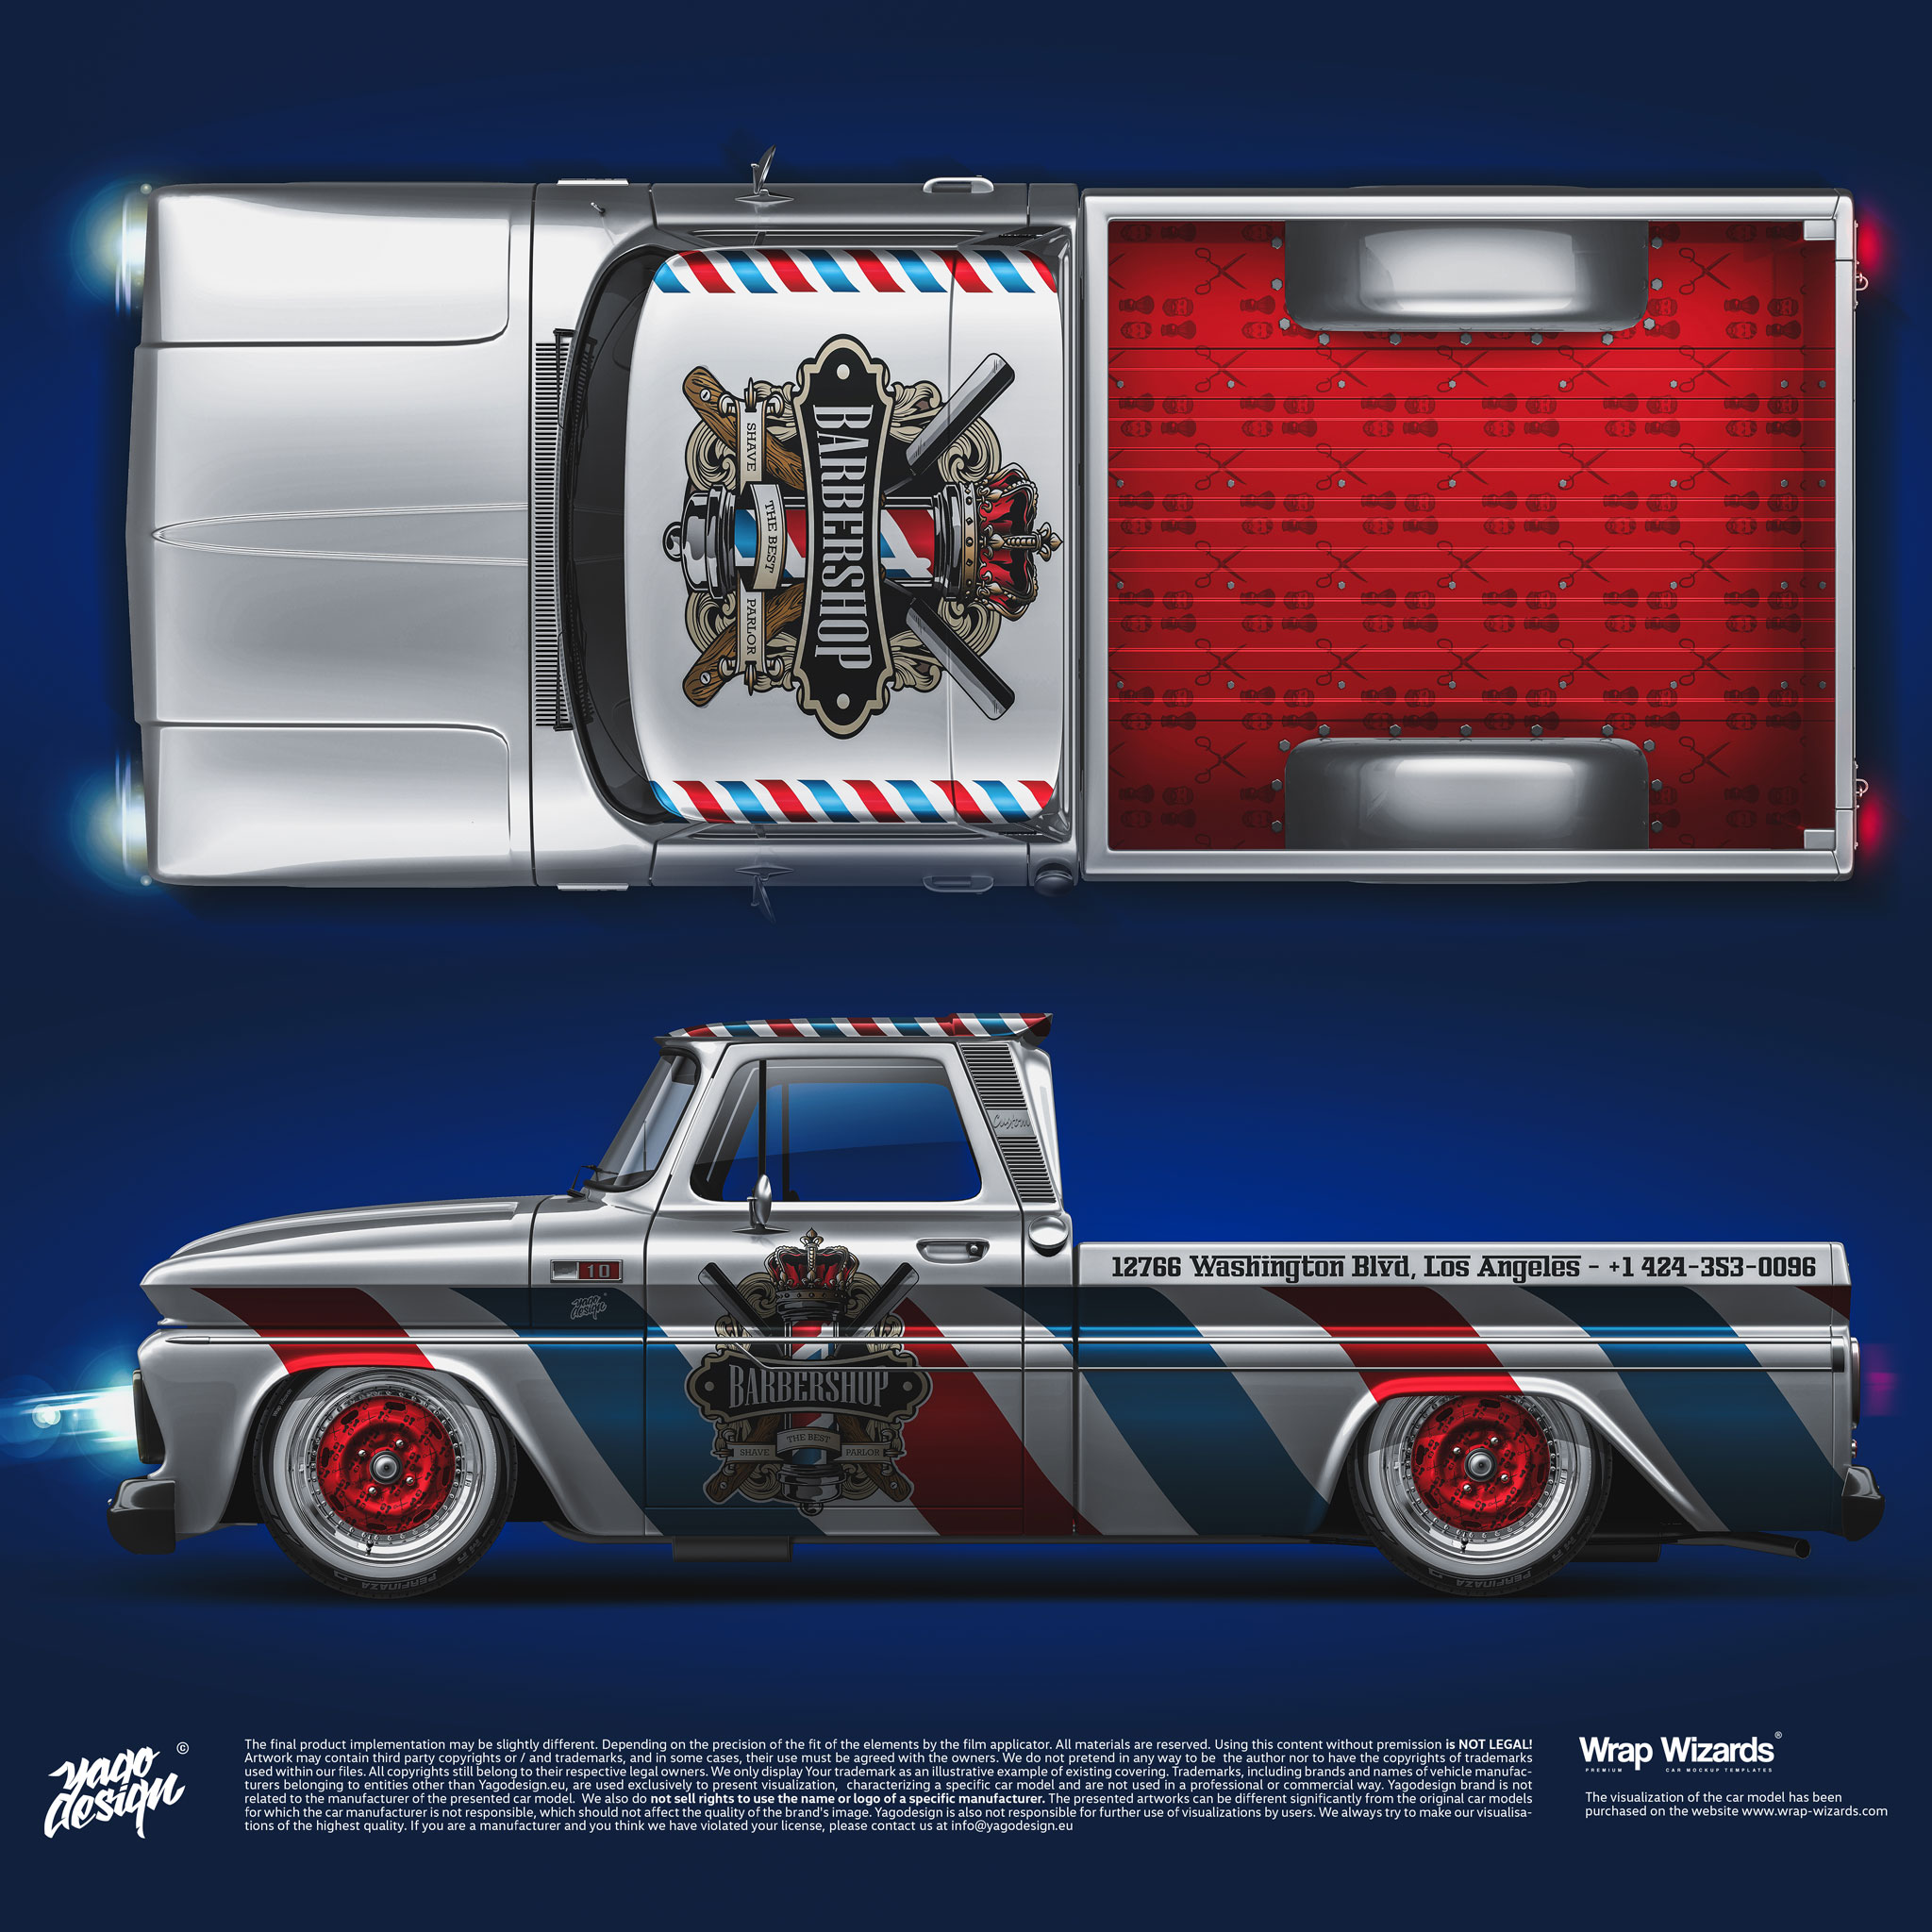 Chevrolet-C-10-by-Yagodesign-2020-Car-Wrapping-Design-Studio